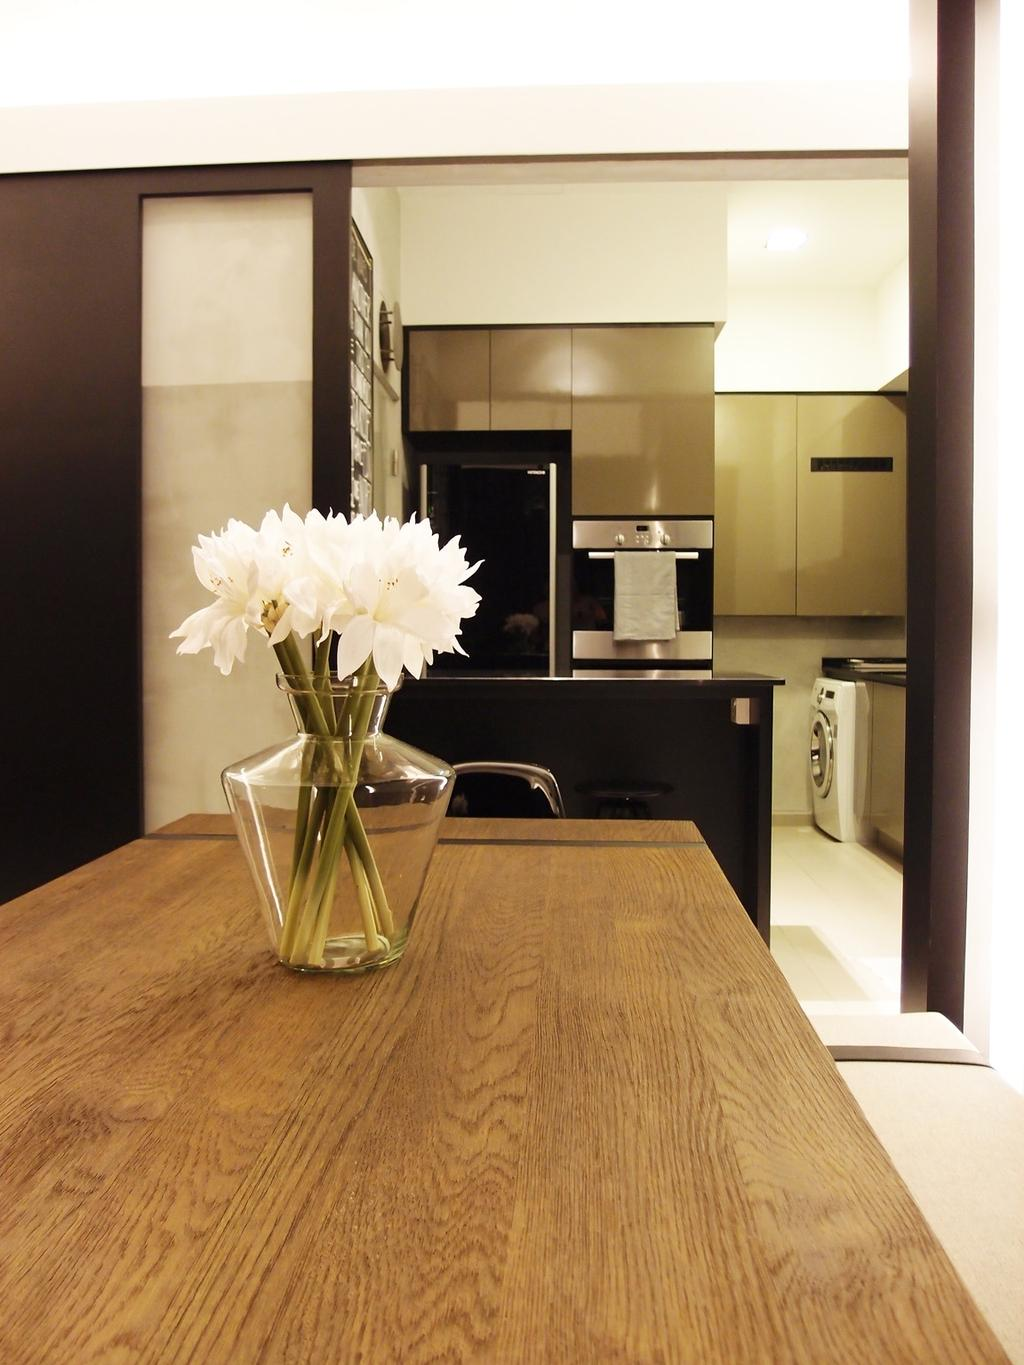 Modern, HDB, Dining Room, The Peak @ Toa Payoh, Interior Designer, Habit, Dining Table, Table, Wood Laminate, Wood, Laminate, Bench, Sliding Doors, Glass Sliding Doors, Plants, Laundry Room, Jar, Pottery, Vase, Flora, Plant, Potted Plant, Indoors, Interior Design, Room, Furniture